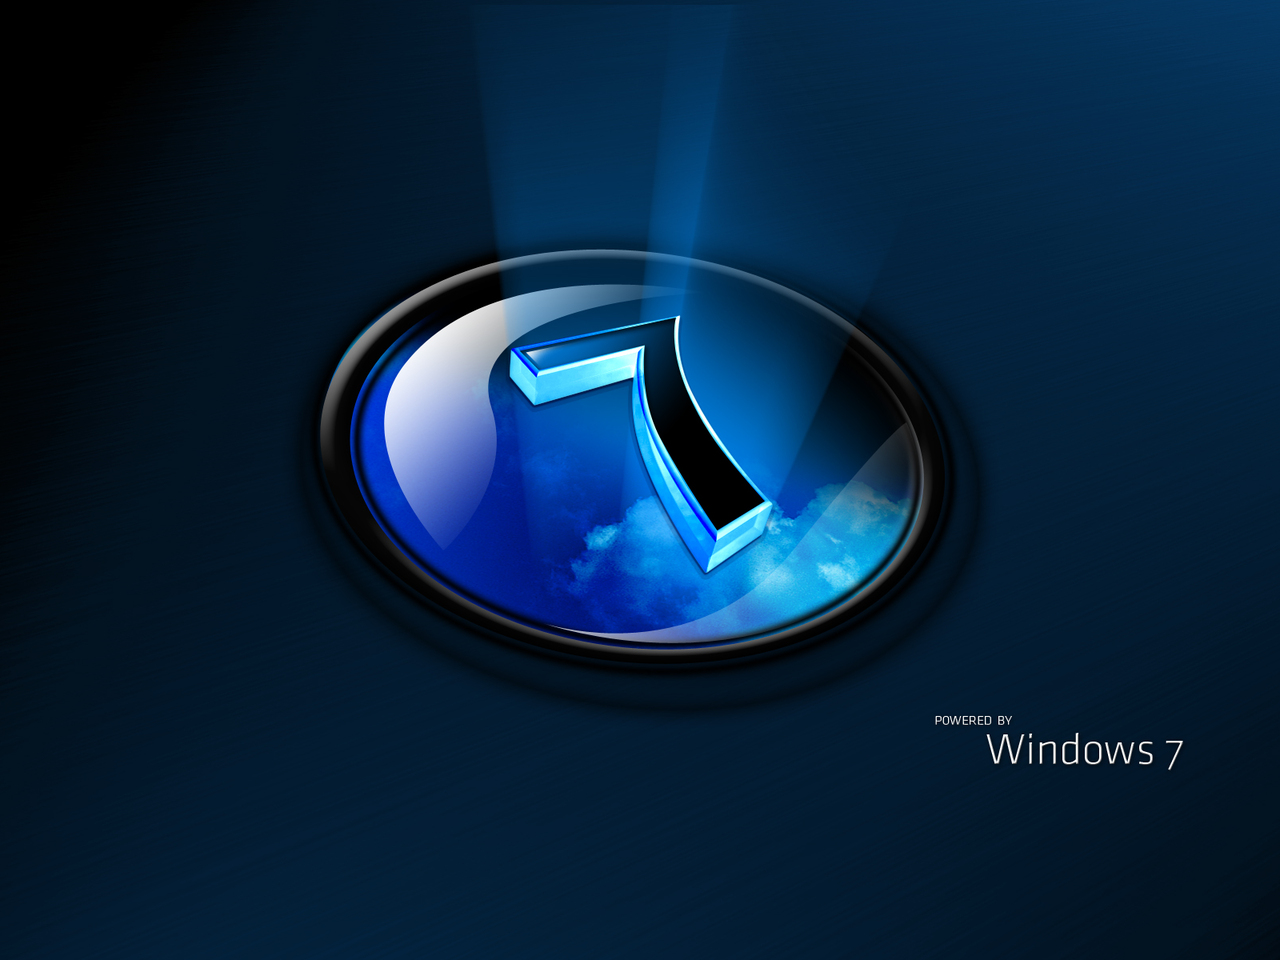 Download 3d Live Wallpaper For Pc Windows 7 Download 1280x960